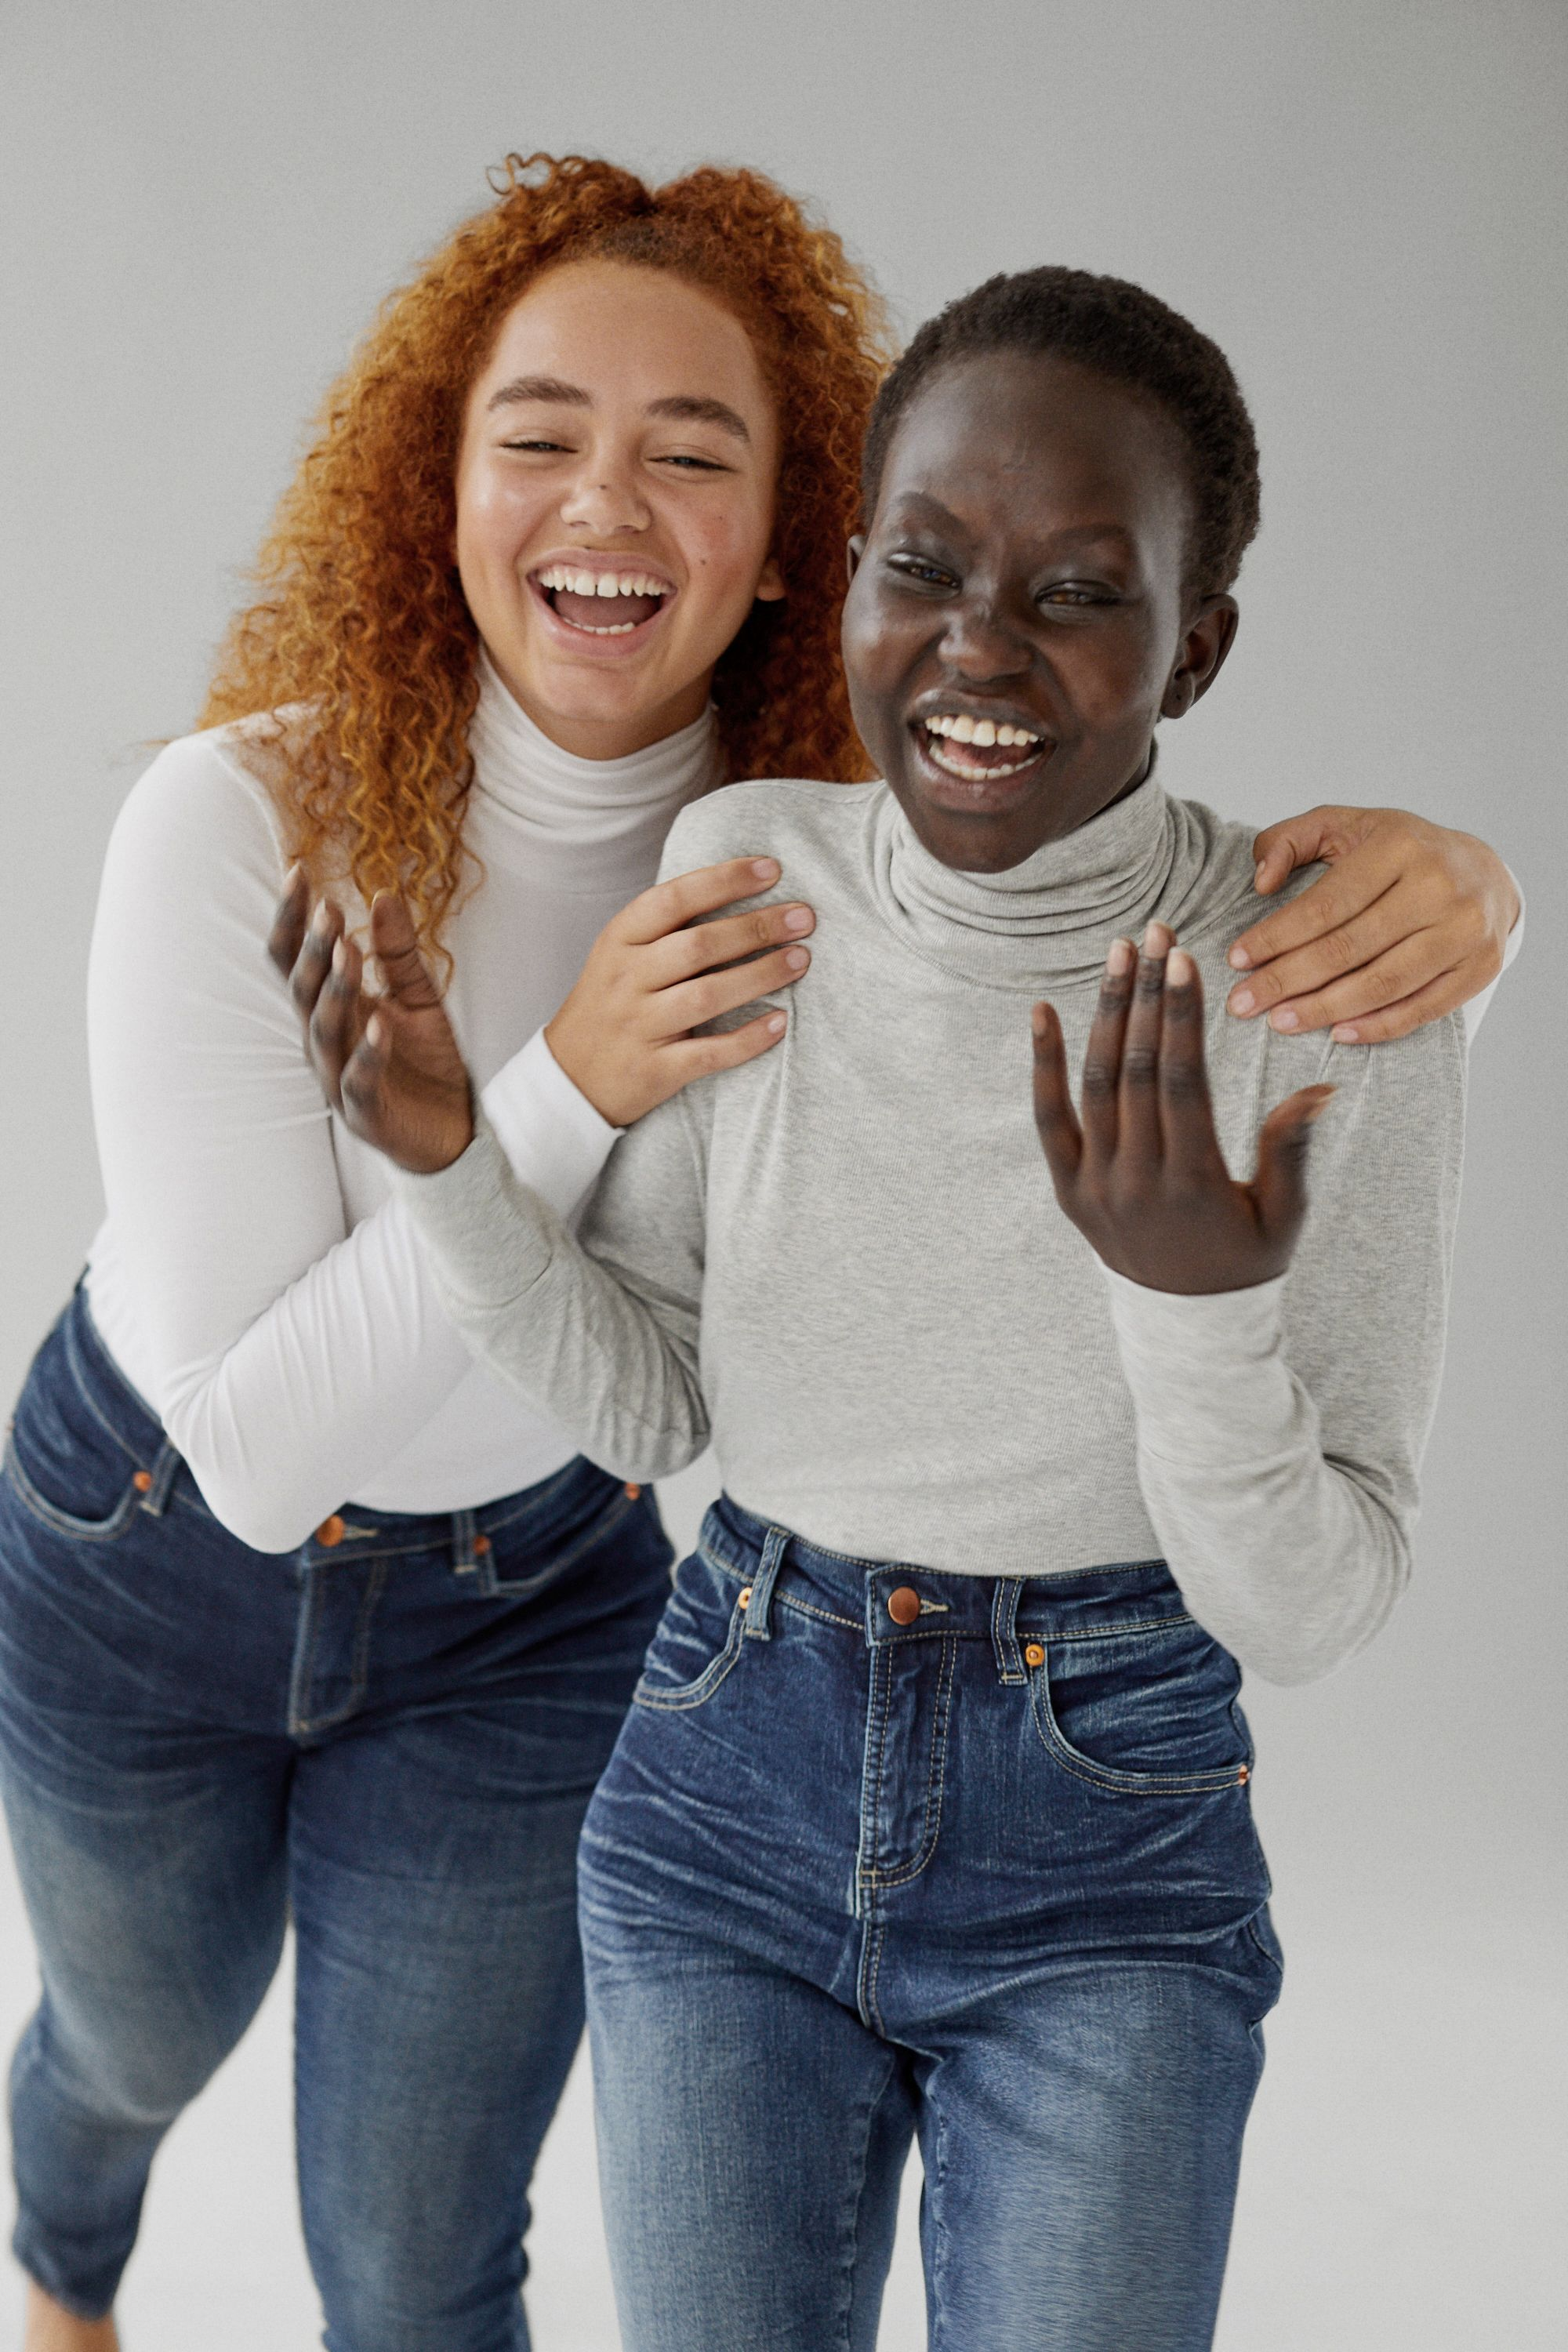 Universal Standard Wants to Treat You and Your BFF to Some Jeans